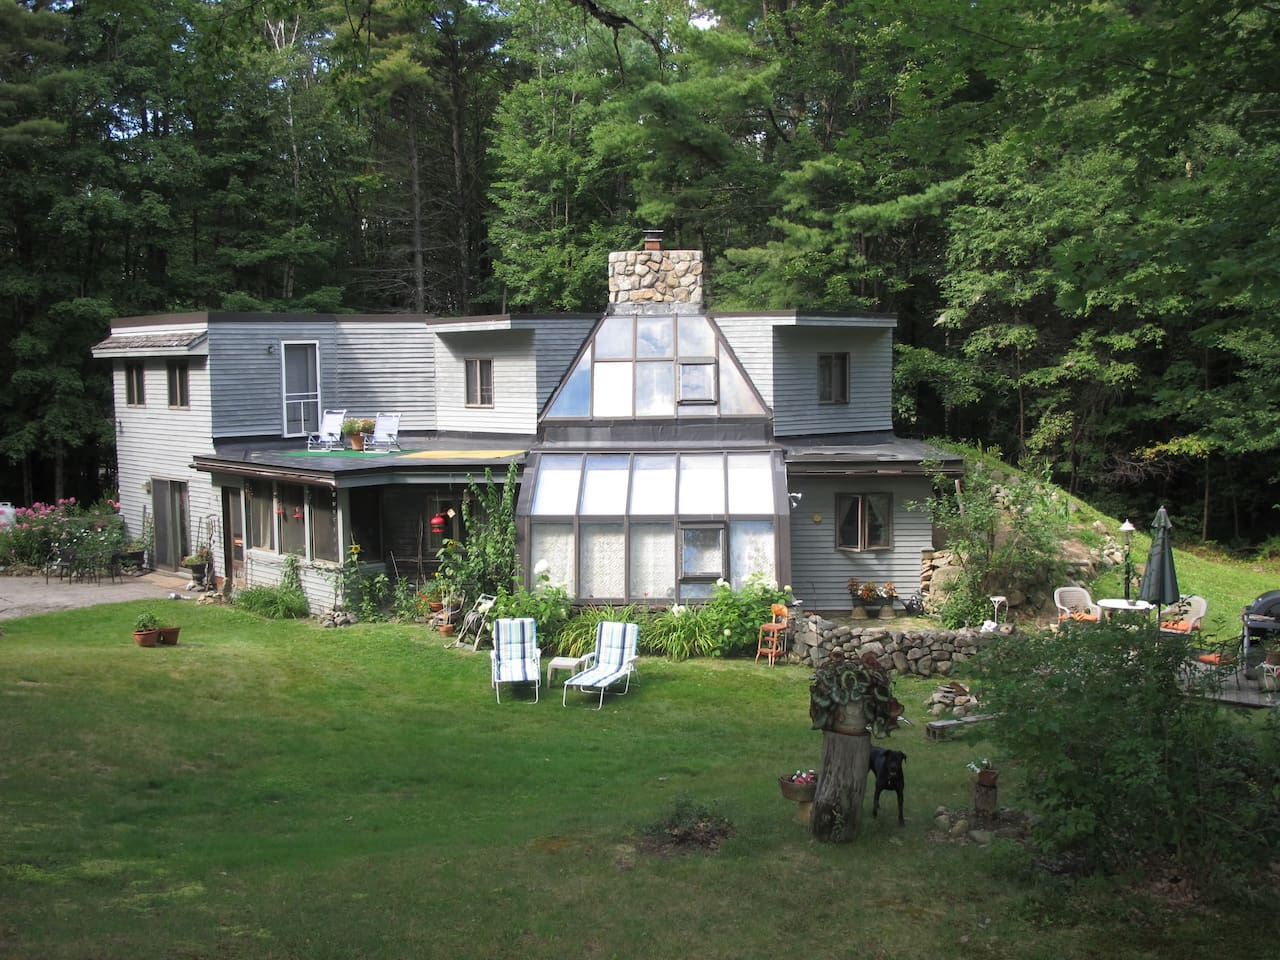 Come and enjoy the experience of our beautiful passive solar home nestled in the White Mountains. A rural location within driving distance to   shopping, restaurants, and all outdoor passions.